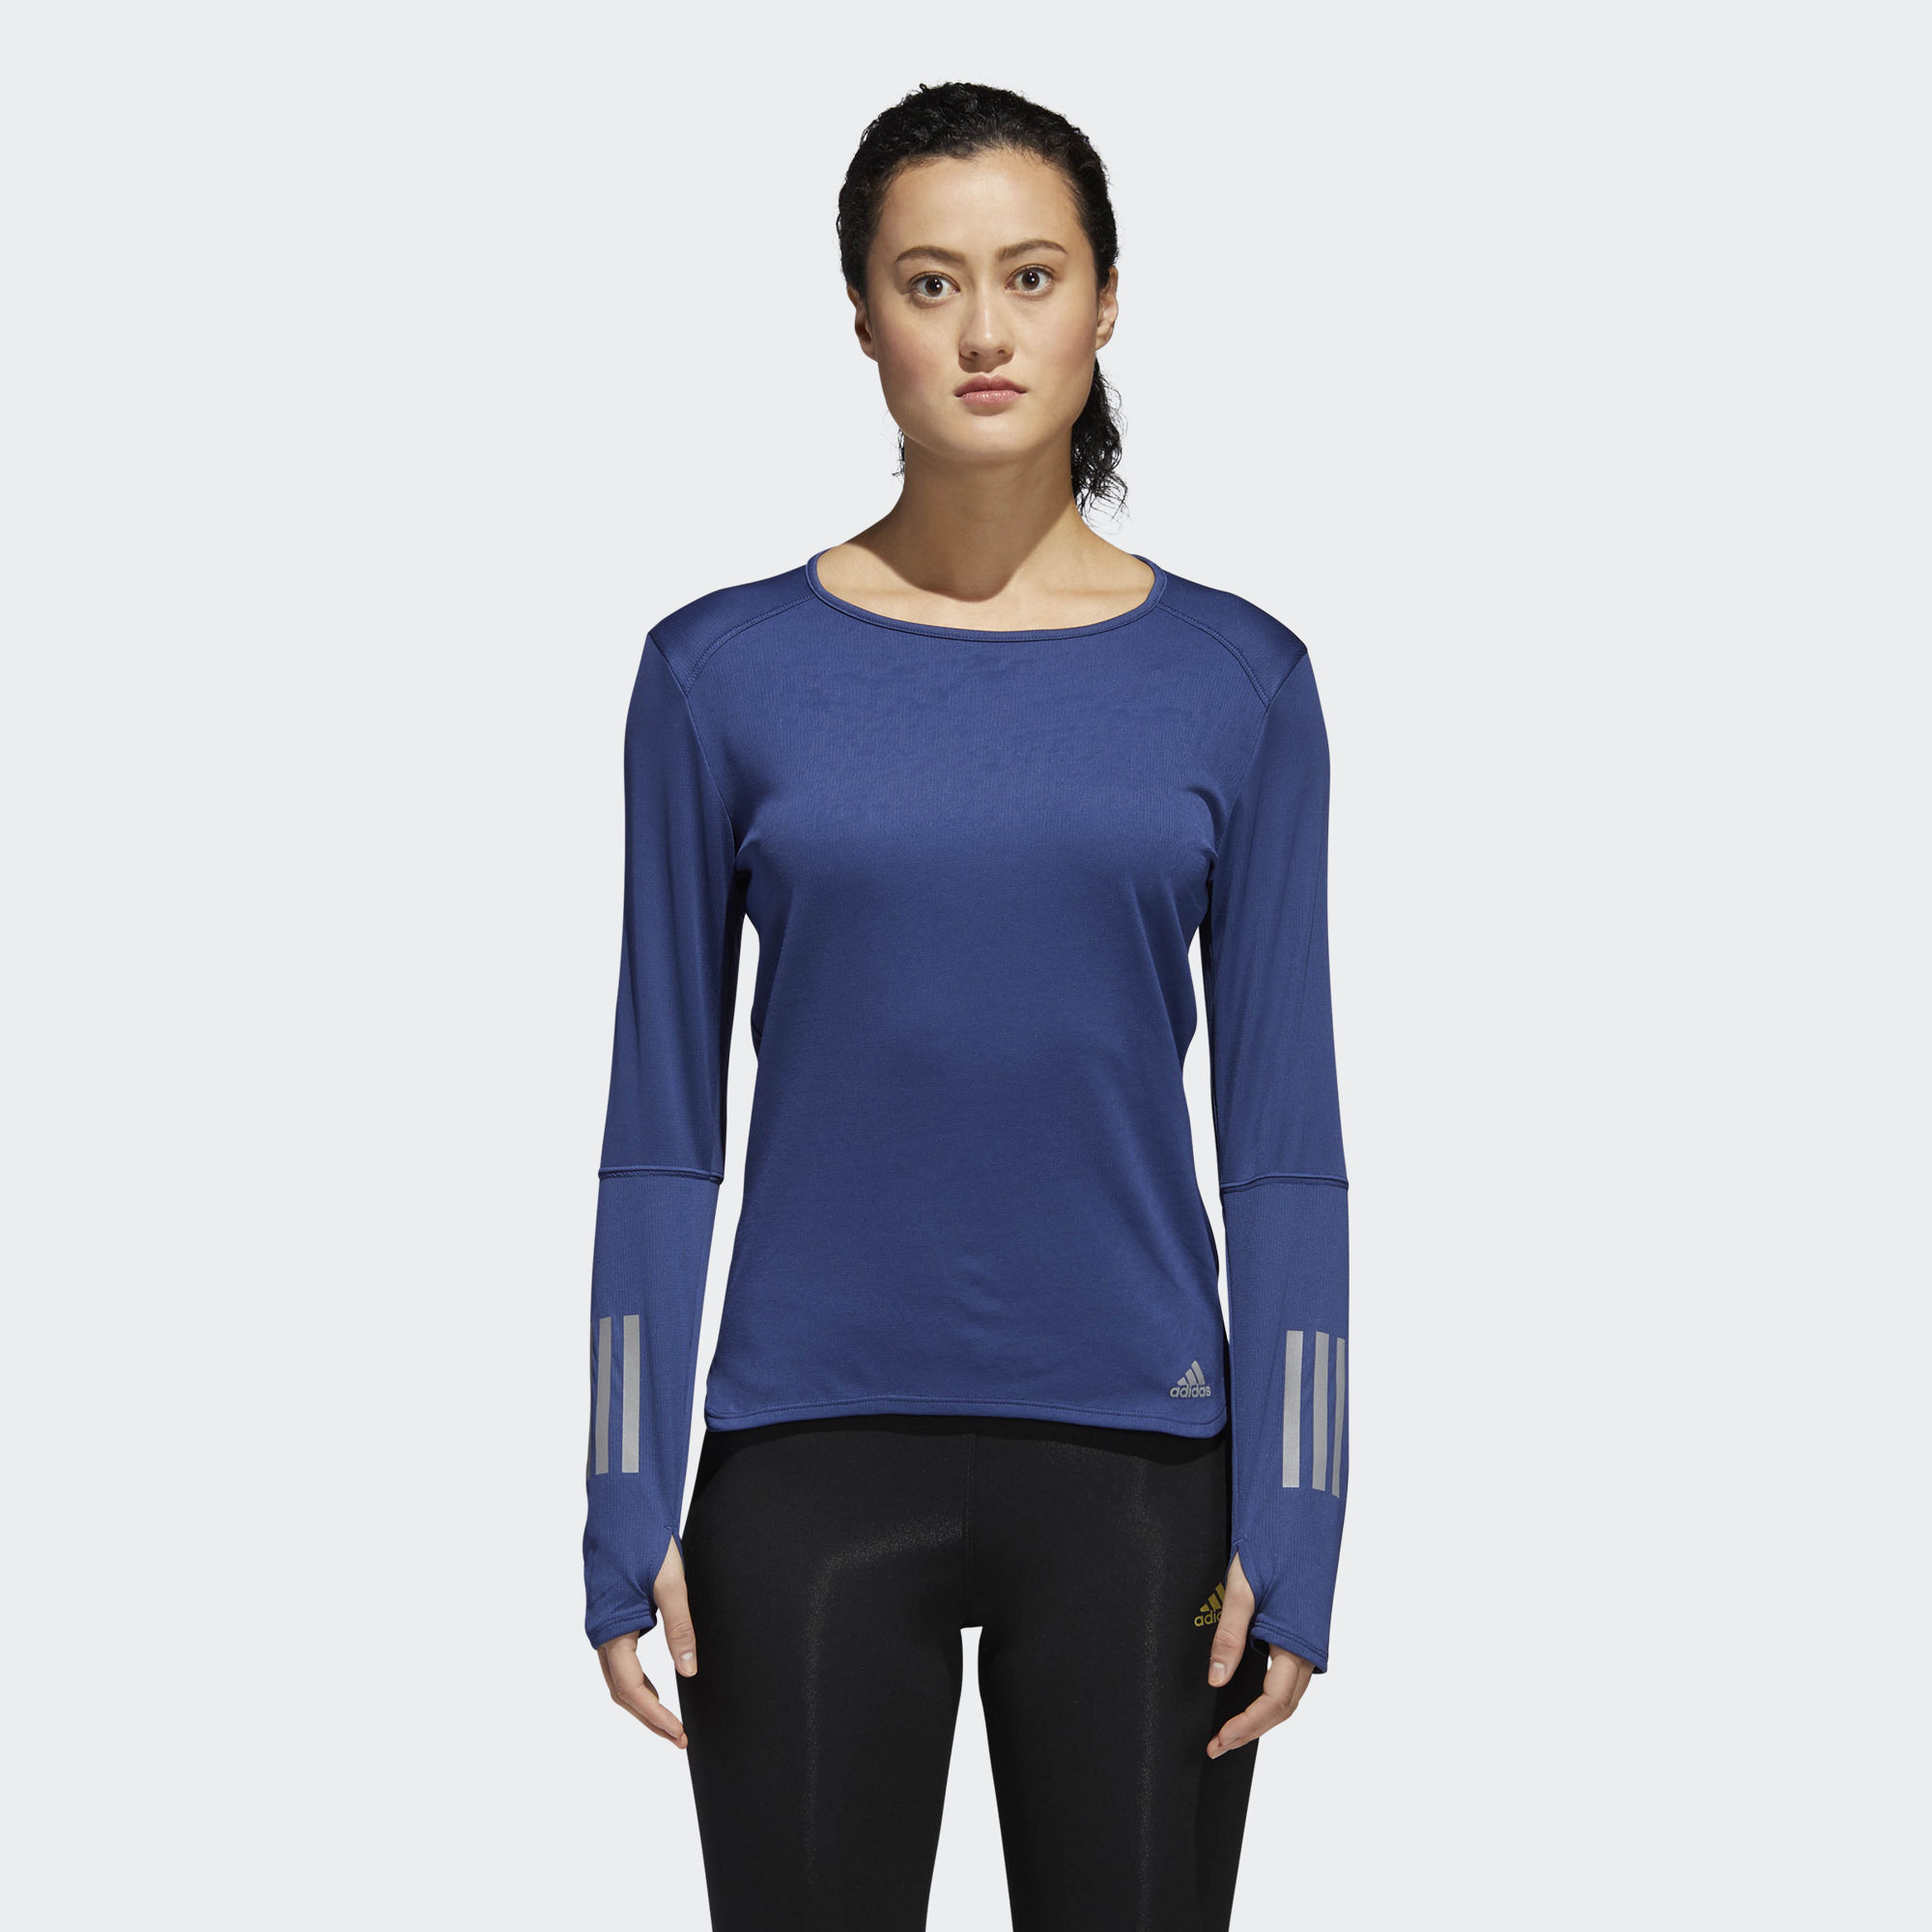 adidas Response Long Sleeve w in Blau